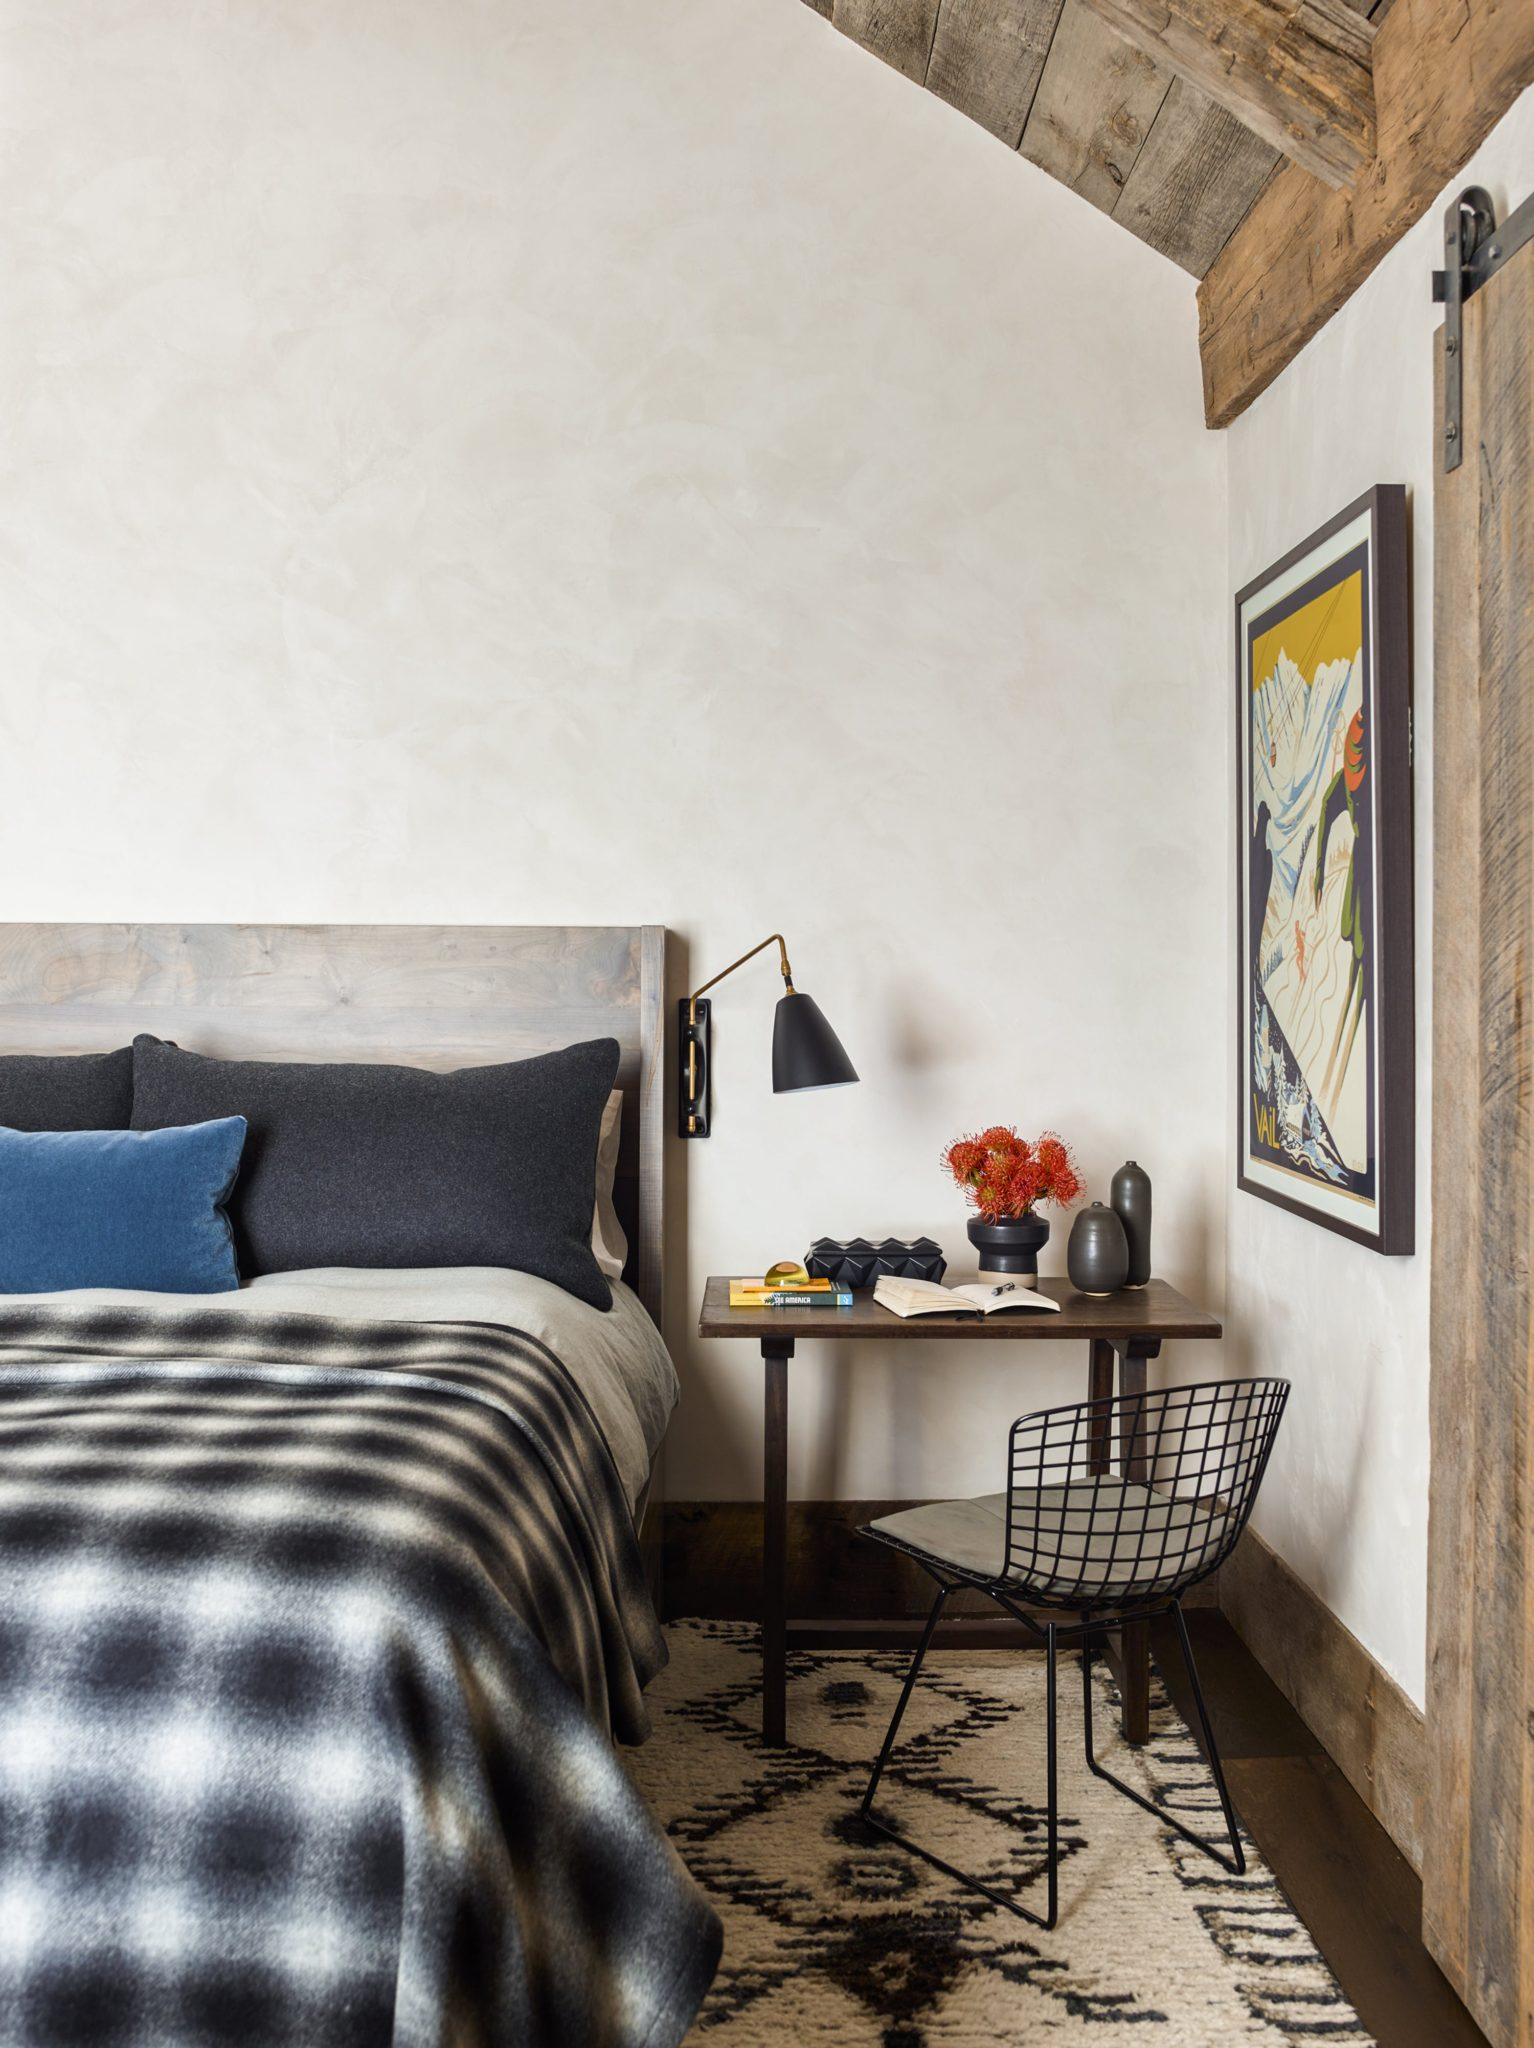 The guest bedroom displays a cozy, contemporary design. The walnut bed from BDDW is decorated with a custom bed cover in Chivasso plaid and pillows in Mariano Fortuny mohair and Jean de Merry wool. The brass swing arm sconce is from Obsolete and the metal desk chair is from Harry Bertoia.